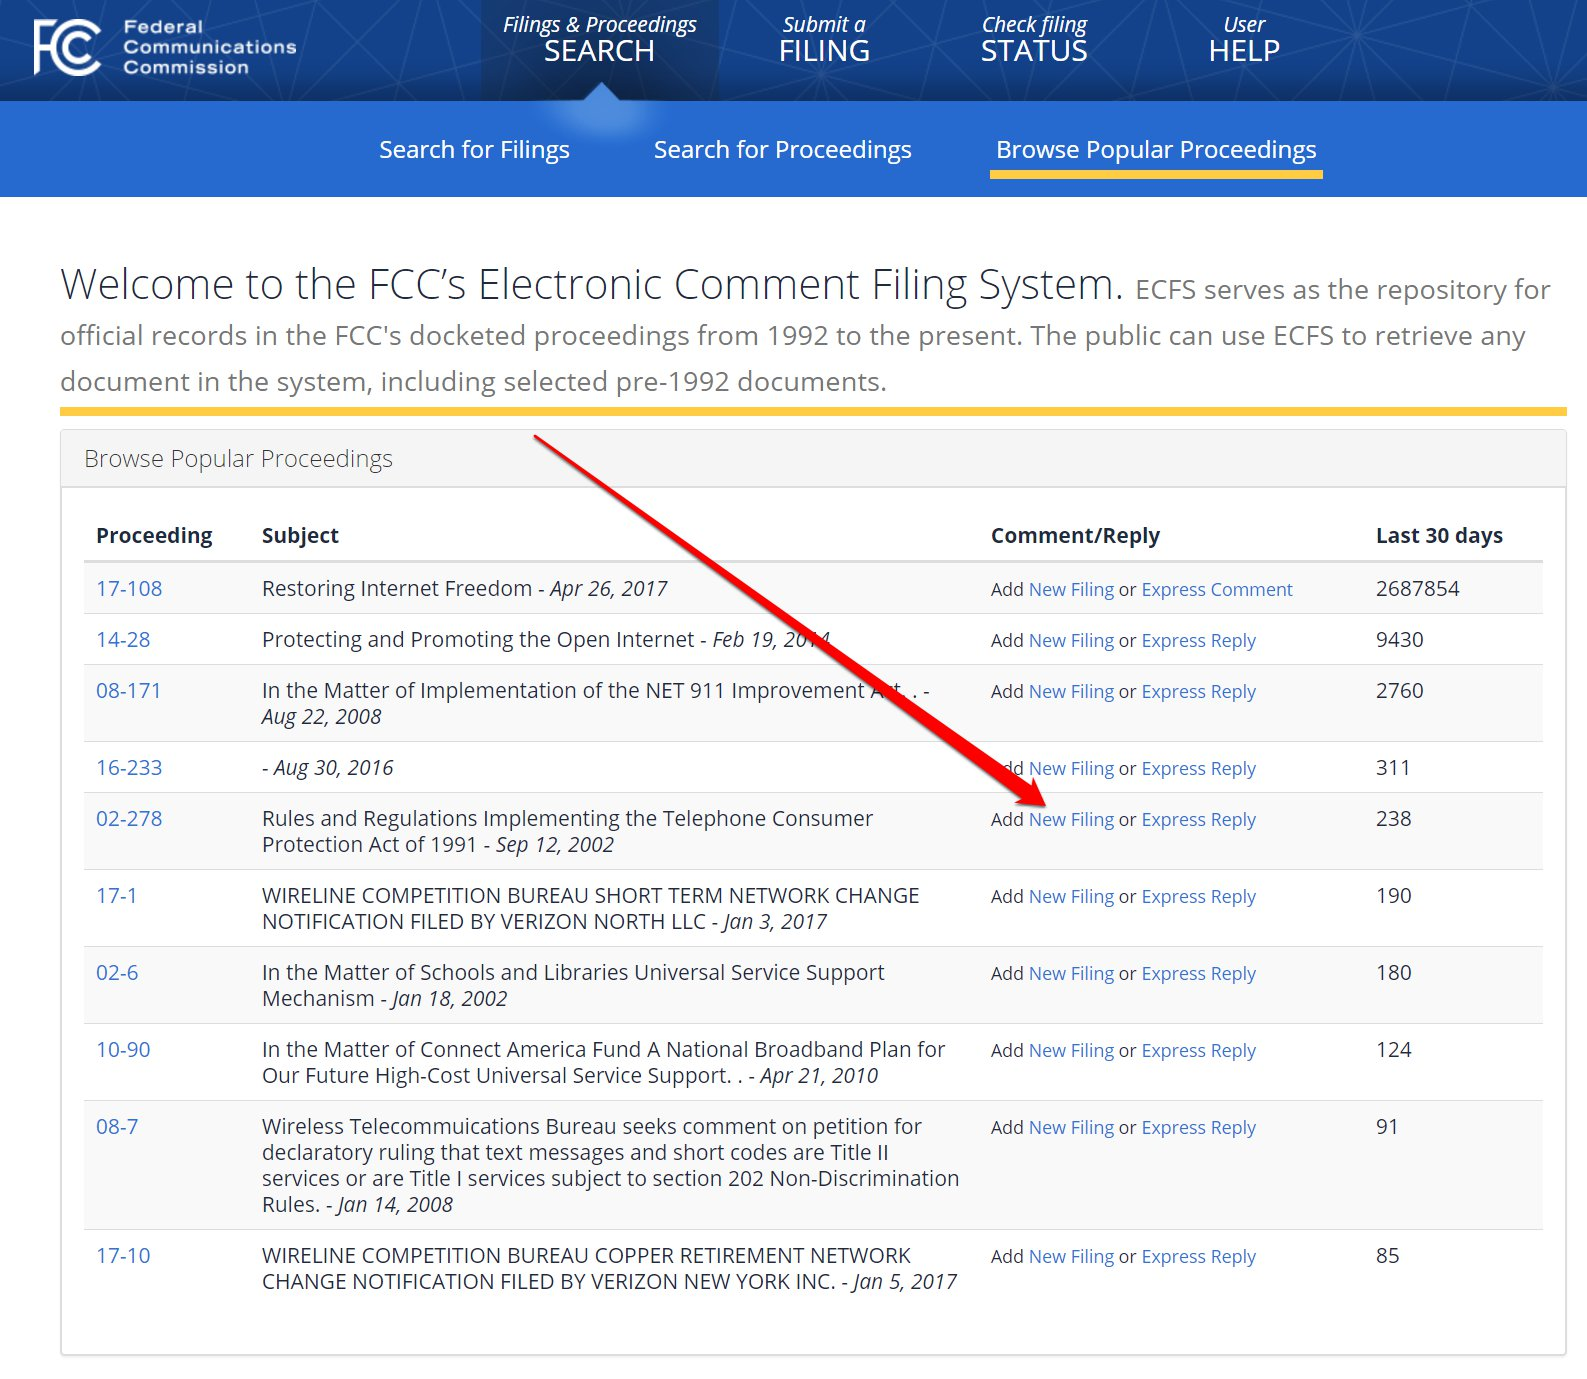 Create a new filing to tell the FCC what you think